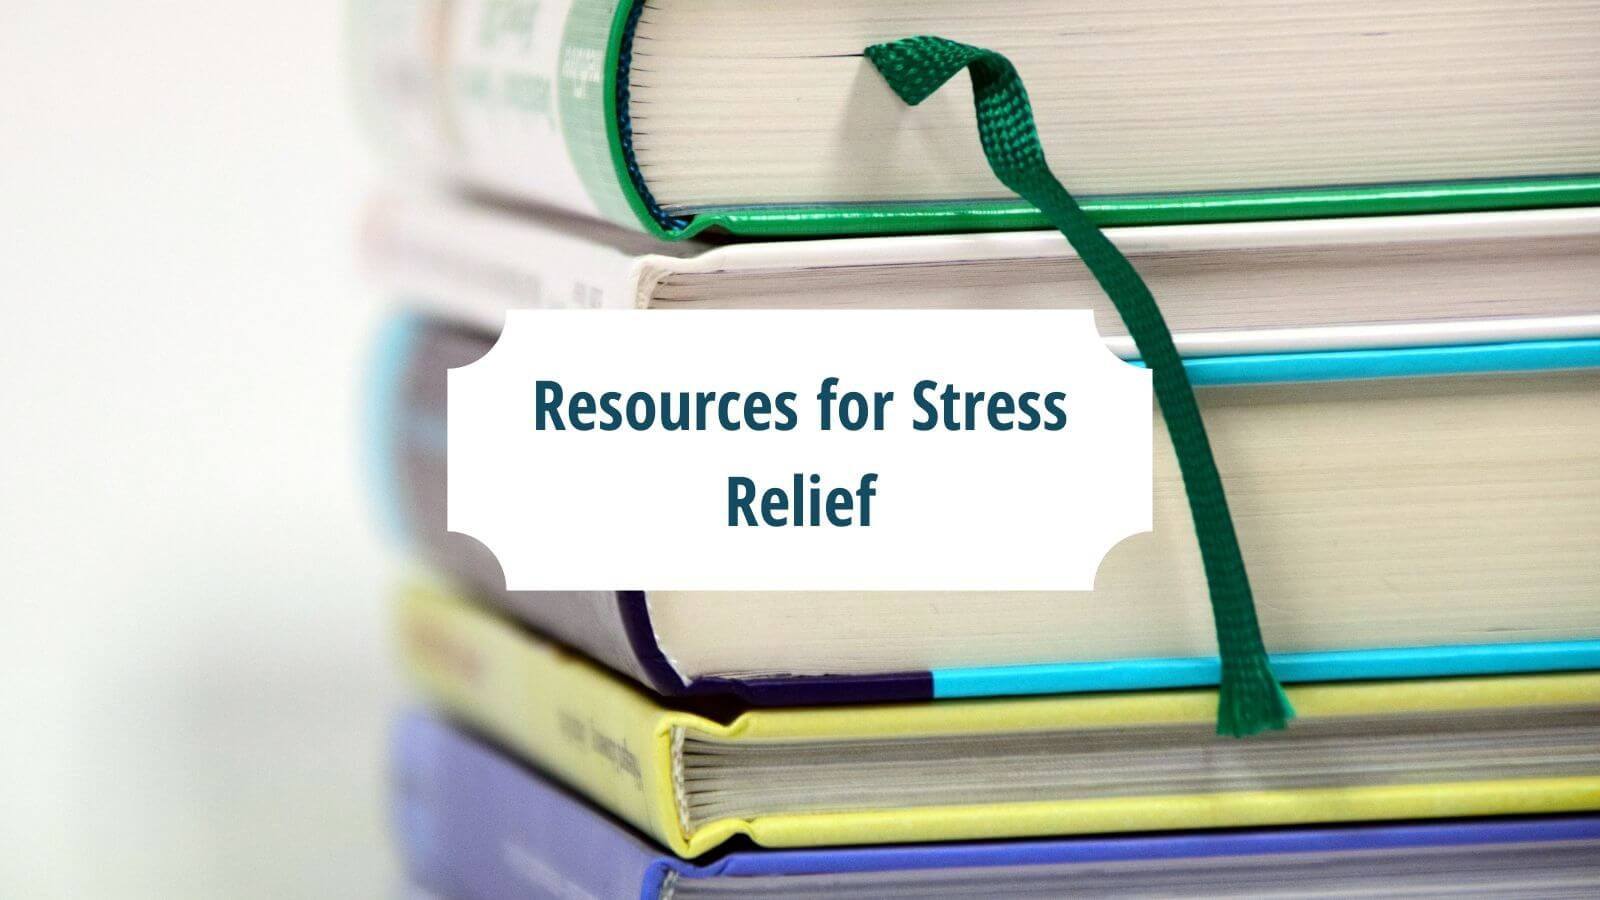 """A stack of books with the words """"Resources for Stress Relief"""" in green against a white block 